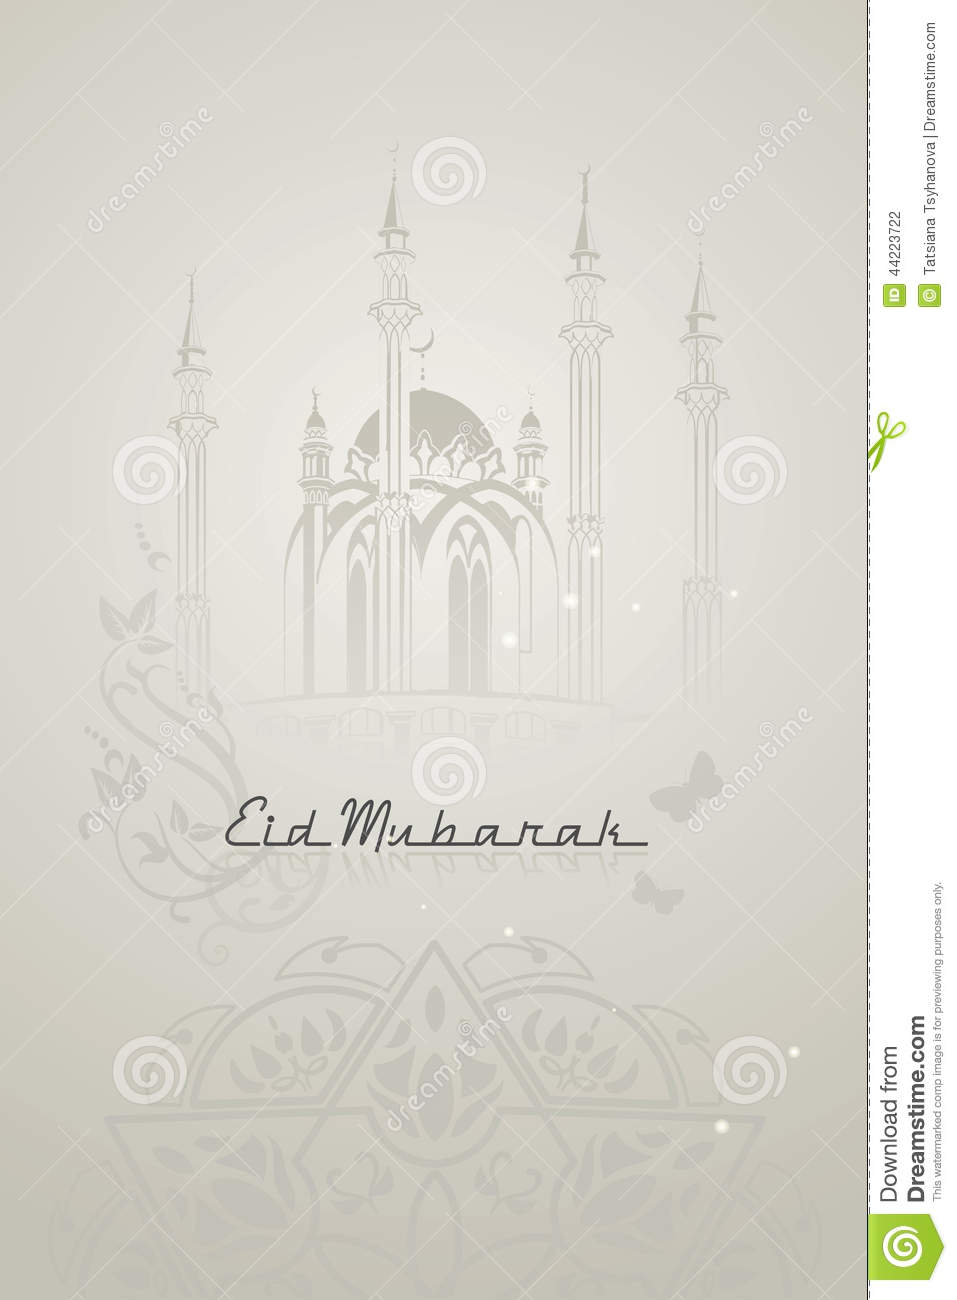 Great Eid Mubarak Eid Al-Fitr Decorations - eid-ul-fitr-eid-mubarak-greeting-card-arabic-pattern-decorated-light-beige-background-mosque-morning-nature-background-holy-44223722  Pic_378296 .jpg